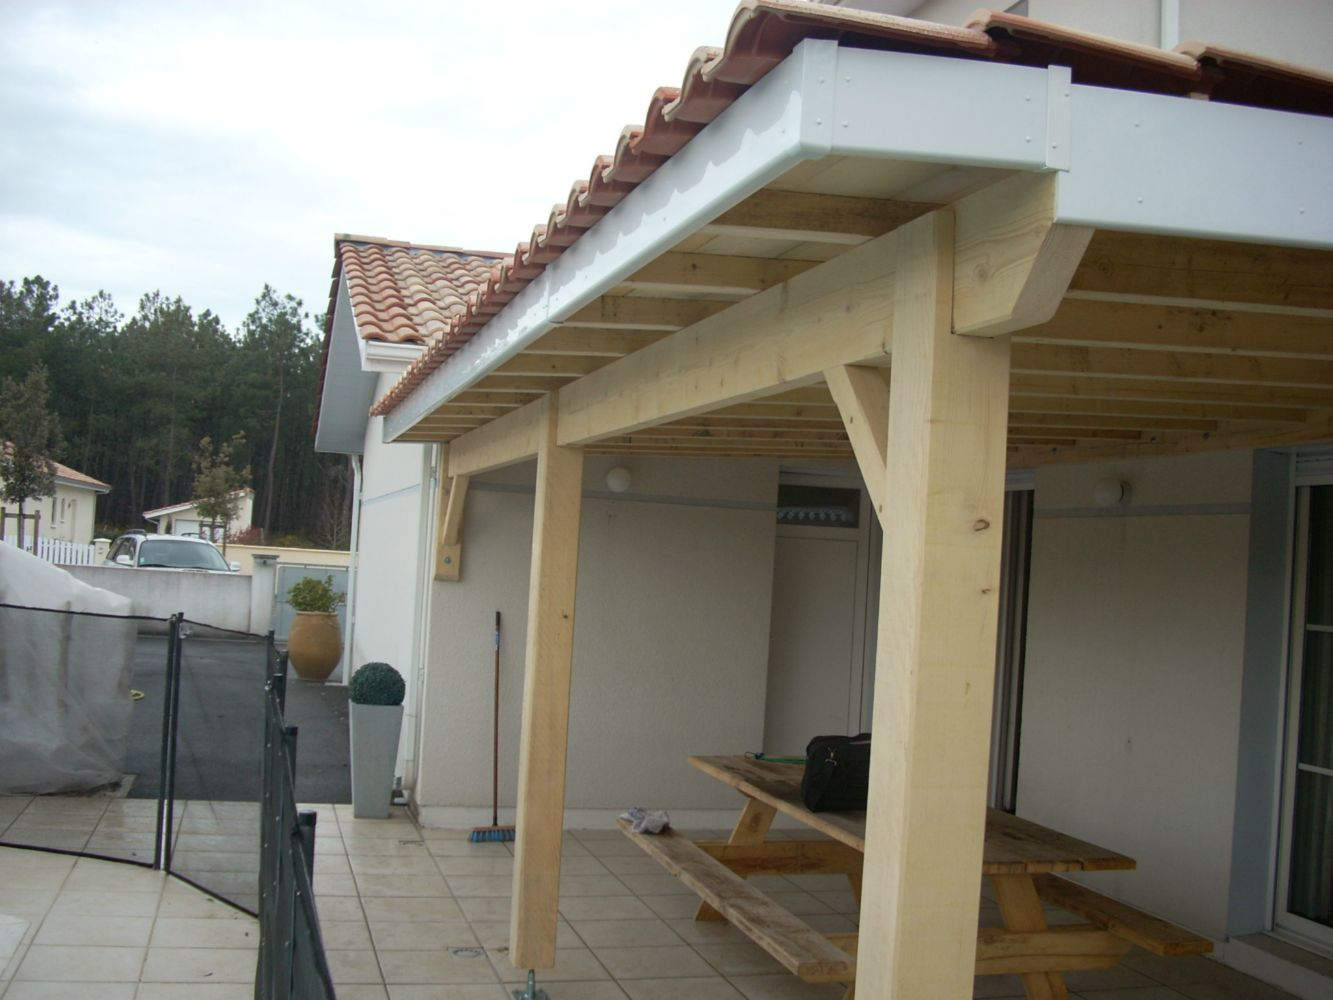 R alisation d 39 une pergola couverte artisan charpente menuiserie for Plans de pergola